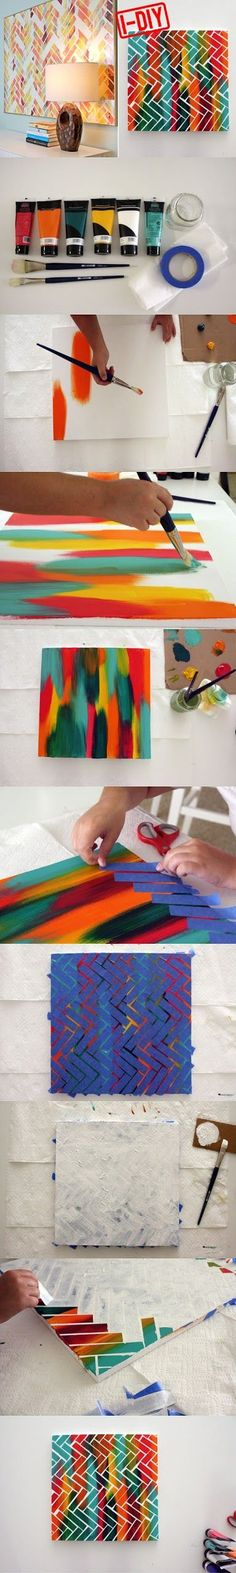 This looks really fun to make!!!